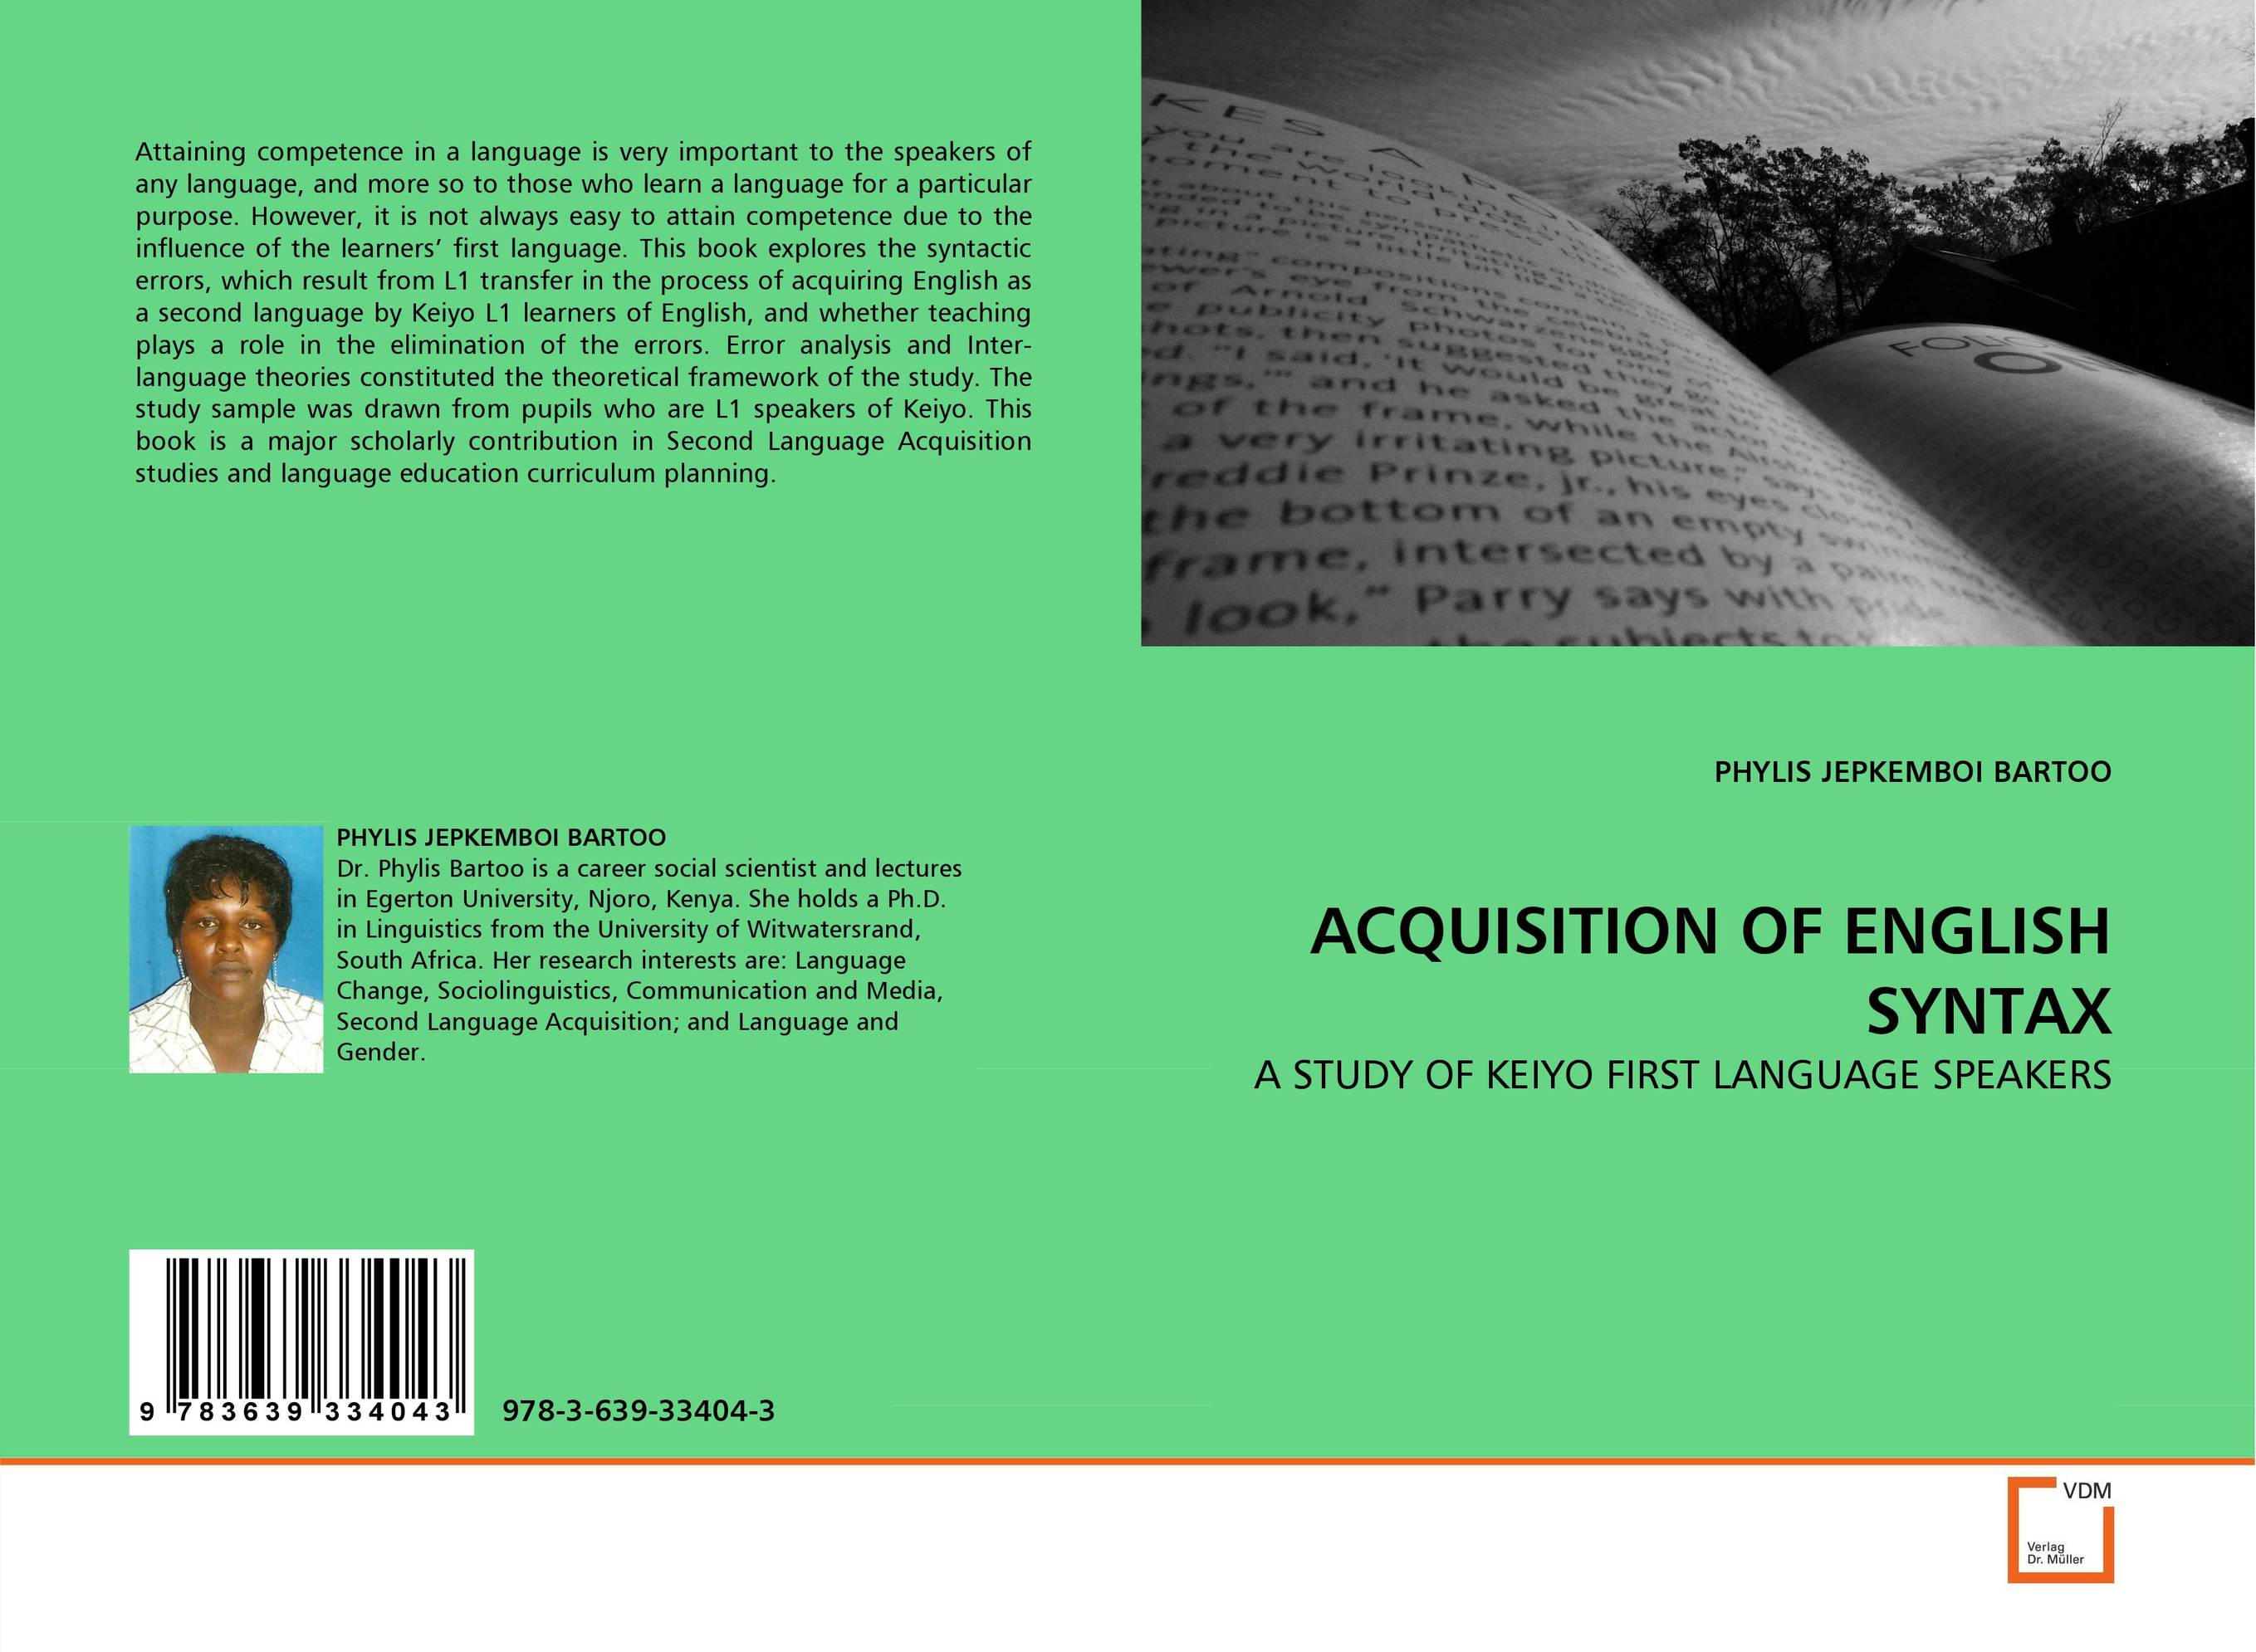 ACQUISITION OF ENGLISH SYNTAX theories and practices of human resource management from quran